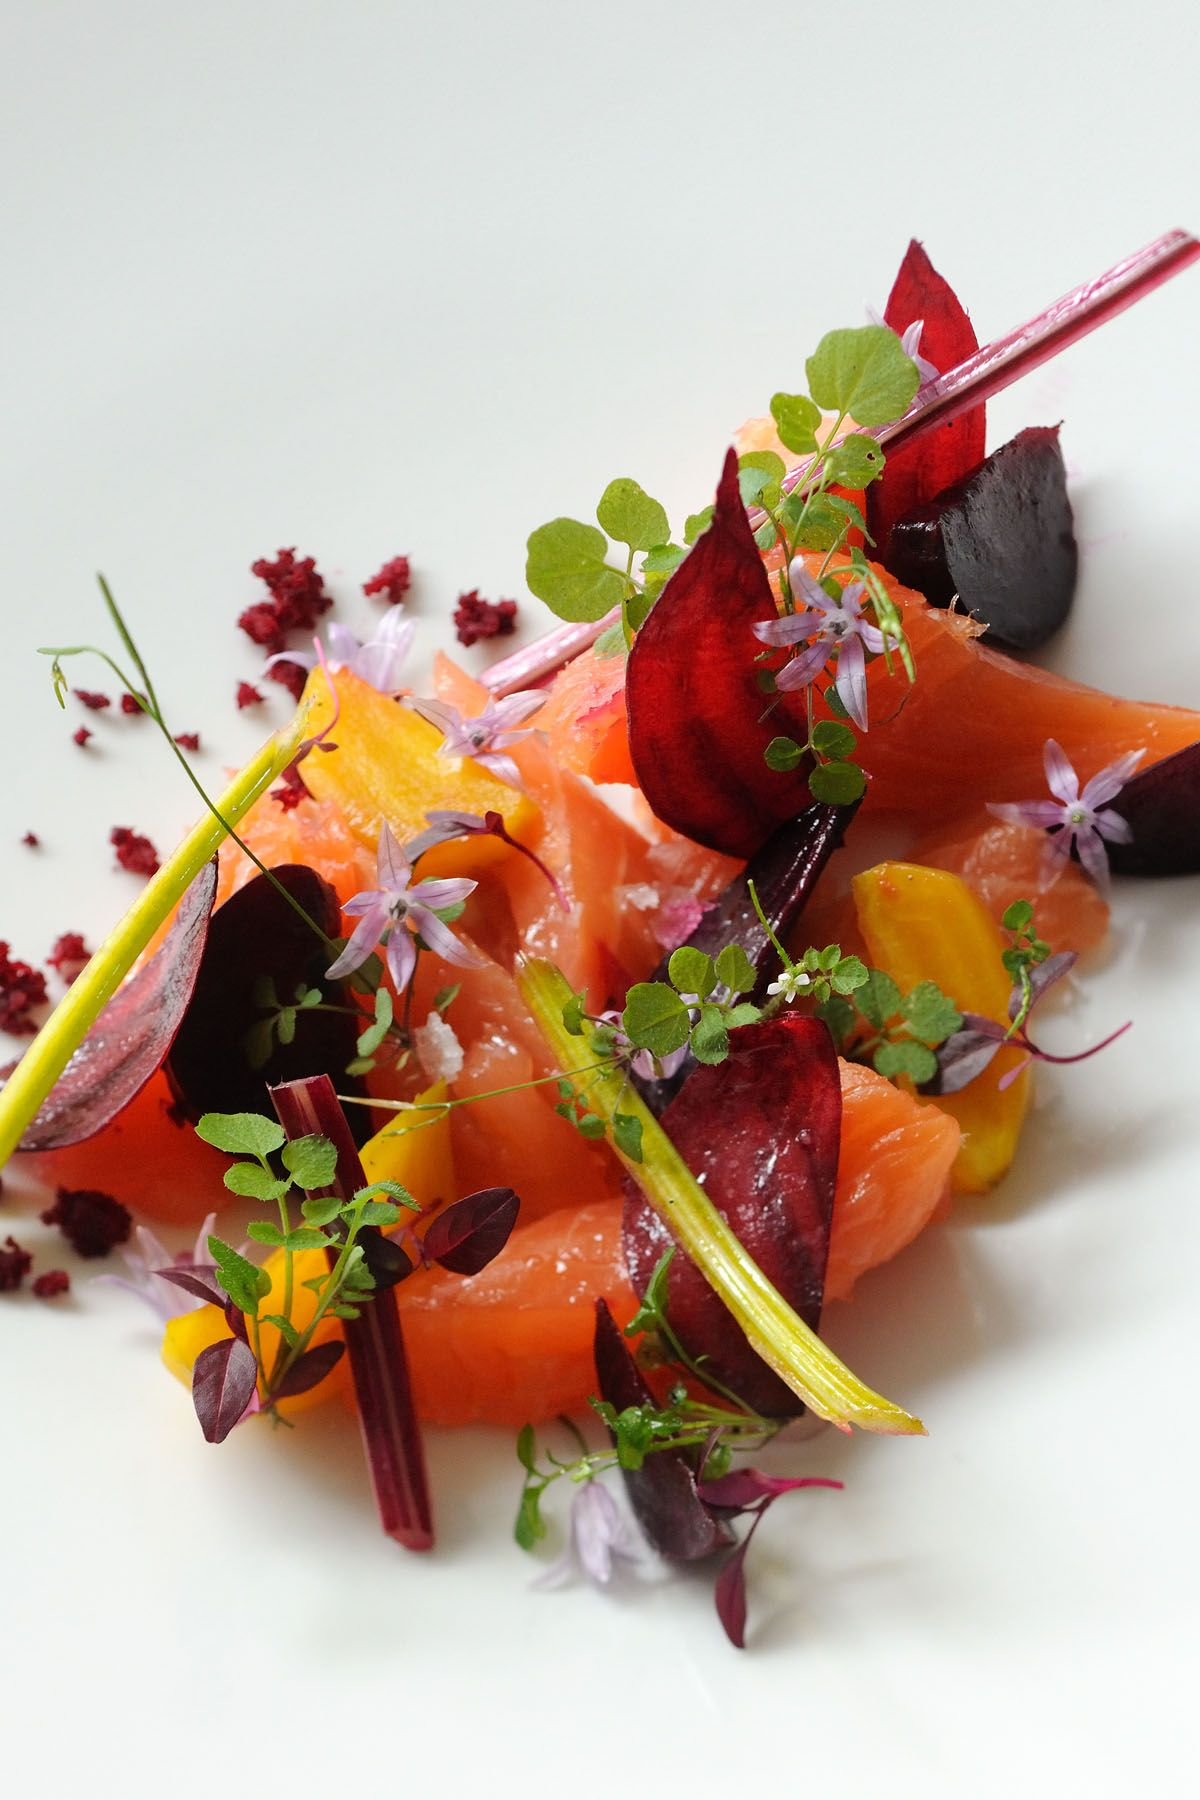 salmon mi cuit with beetroots | recipe | pinterest | fish dishes